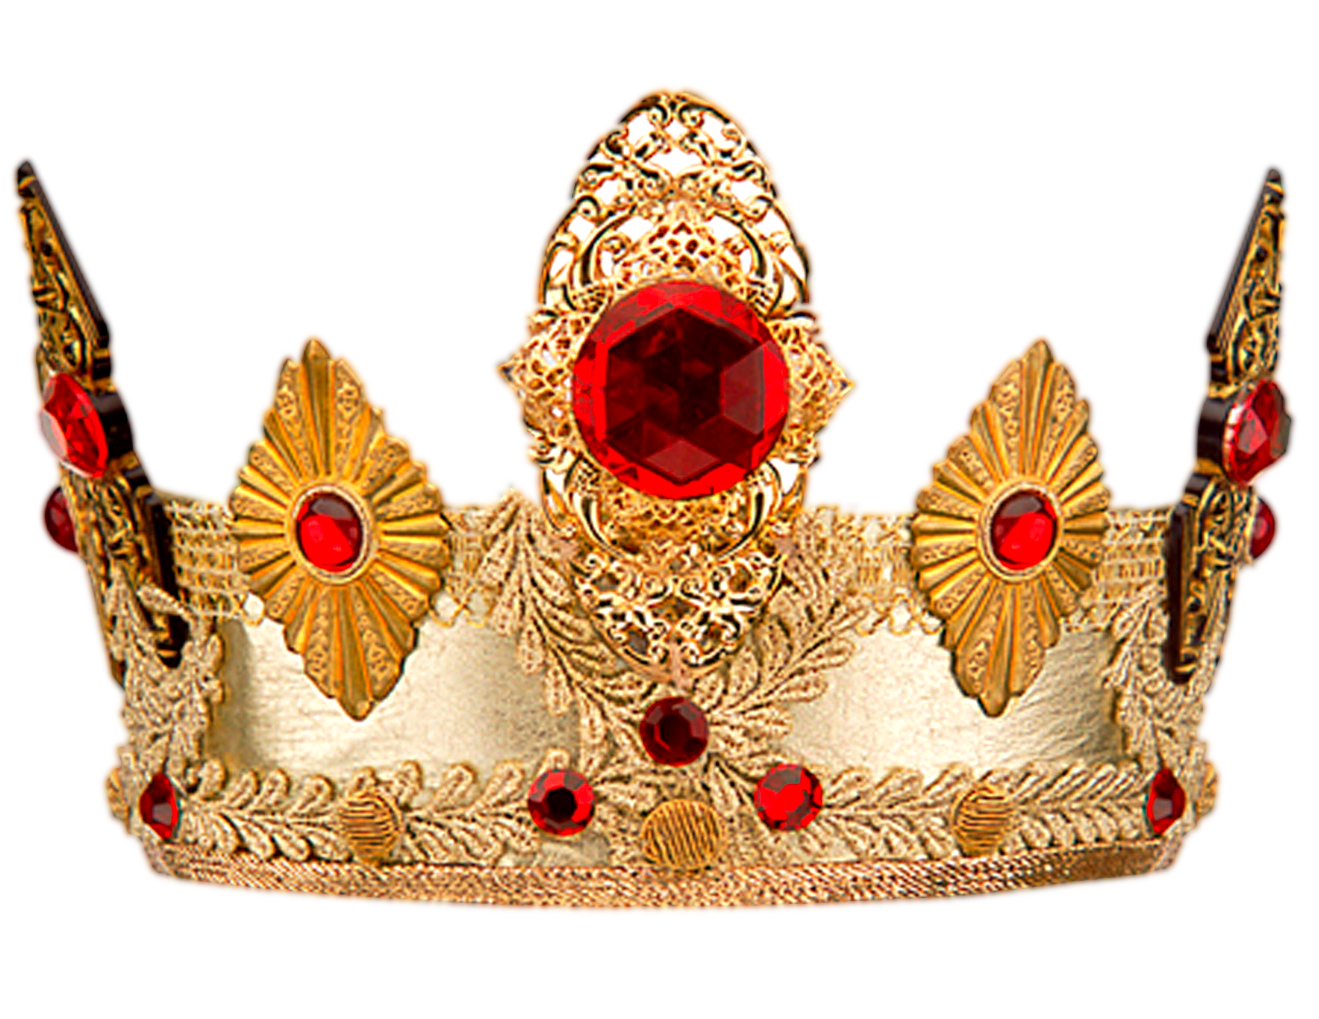 Crown Png Images Free Download Princess Queen Princess Flower